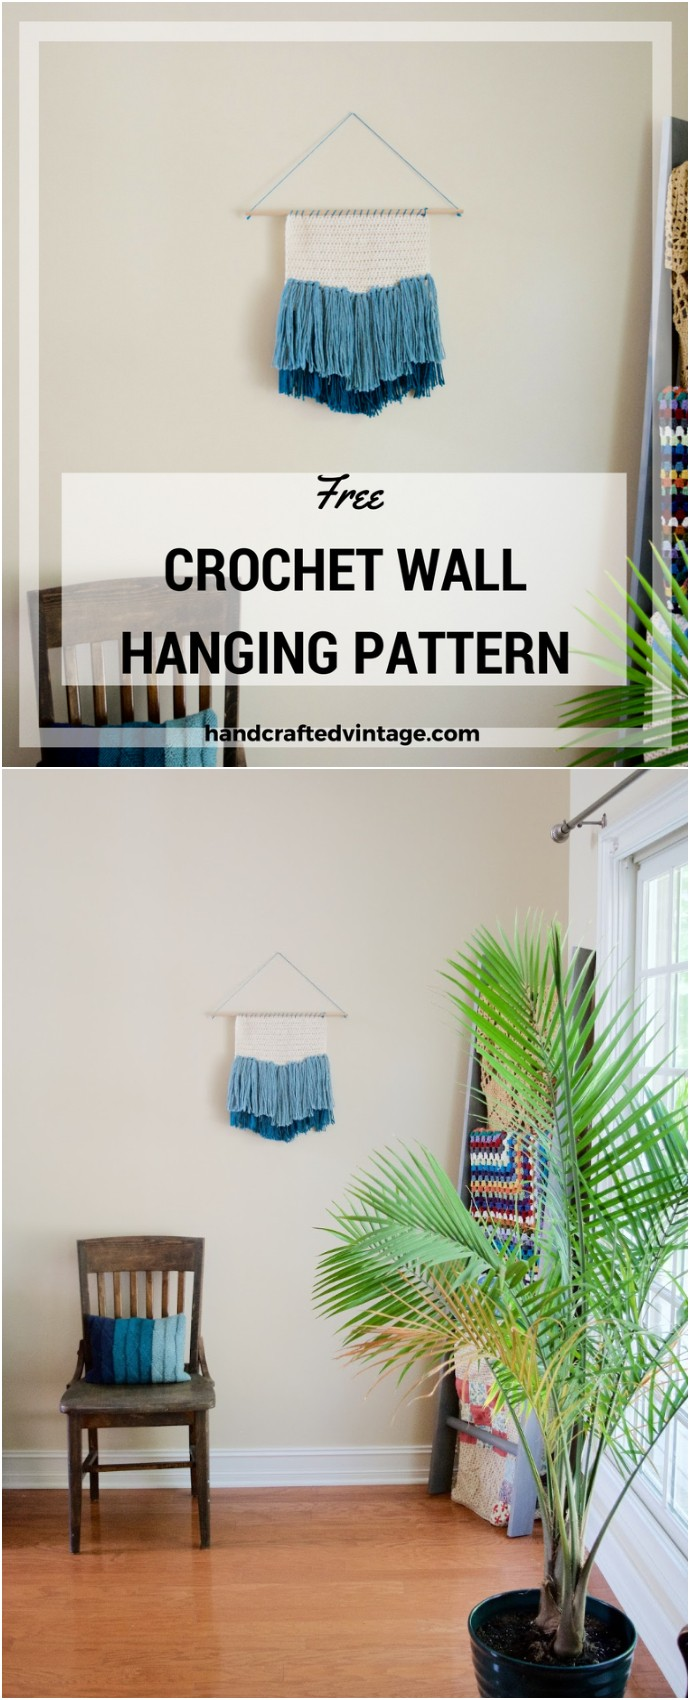 Free Crochet Wall Hanging